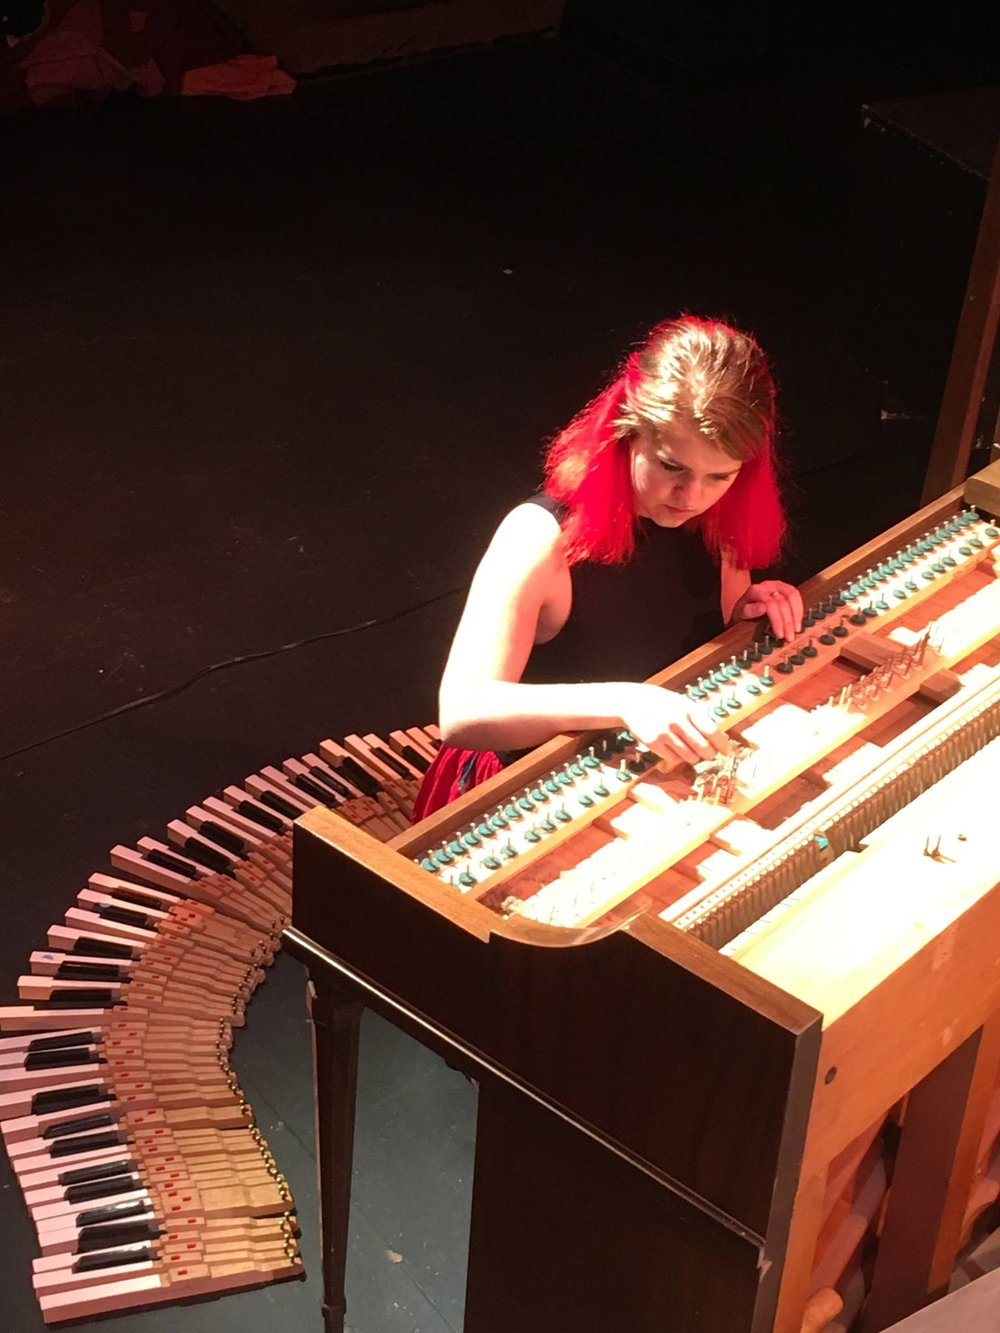 Elizabeth repairs and cleans the piano after the keys began to stick due to humidity in the theatre.